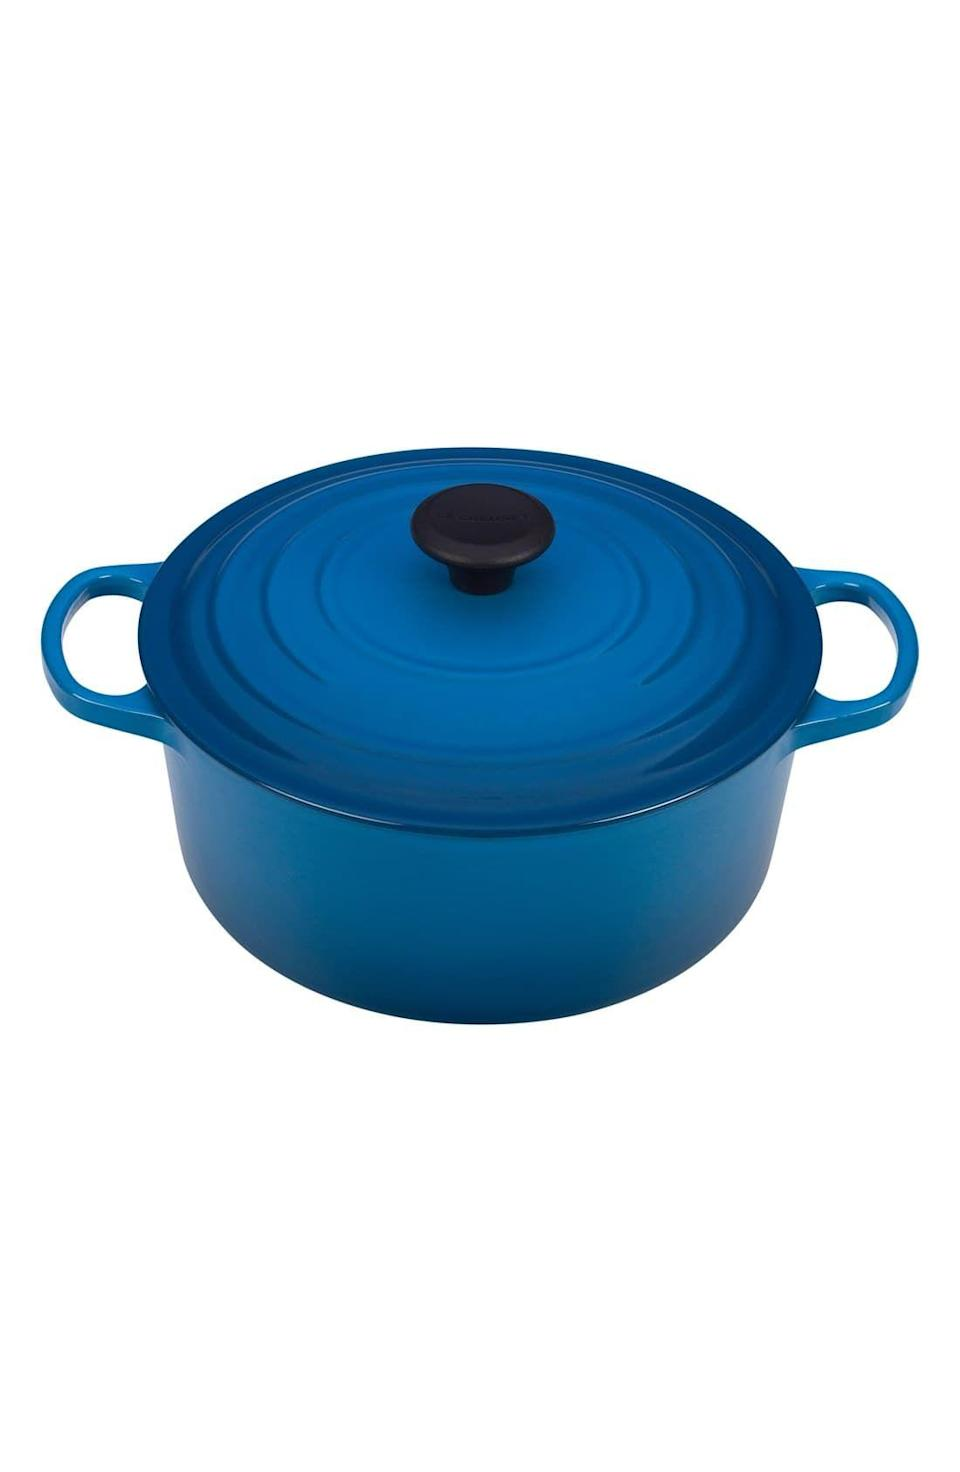 "<p><strong>LE CREUSET</strong></p><p>nordstrom.com</p><p><strong>$360.00</strong></p><p><a href=""https://go.redirectingat.com?id=74968X1596630&url=https%3A%2F%2Fshop.nordstrom.com%2Fs%2Fle-creuset-signature-5-1-2-quart-round-enamel-cast-iron-french-dutch-oven%2F3964287&sref=https%3A%2F%2Fwww.goodhousekeeping.com%2Fholidays%2Fgift-ideas%2Fg28497189%2Fbest-gifts-for-foodies%2F"" rel=""nofollow noopener"" target=""_blank"" data-ylk=""slk:Shop Now"" class=""link rapid-noclick-resp"">Shop Now</a></p><p>If your mom loves to cook for a crowd, this dutch oven from Le Creuset is a top pick. This pot can go from stove to oven to table and comes in an array of vibrant colors.</p>"